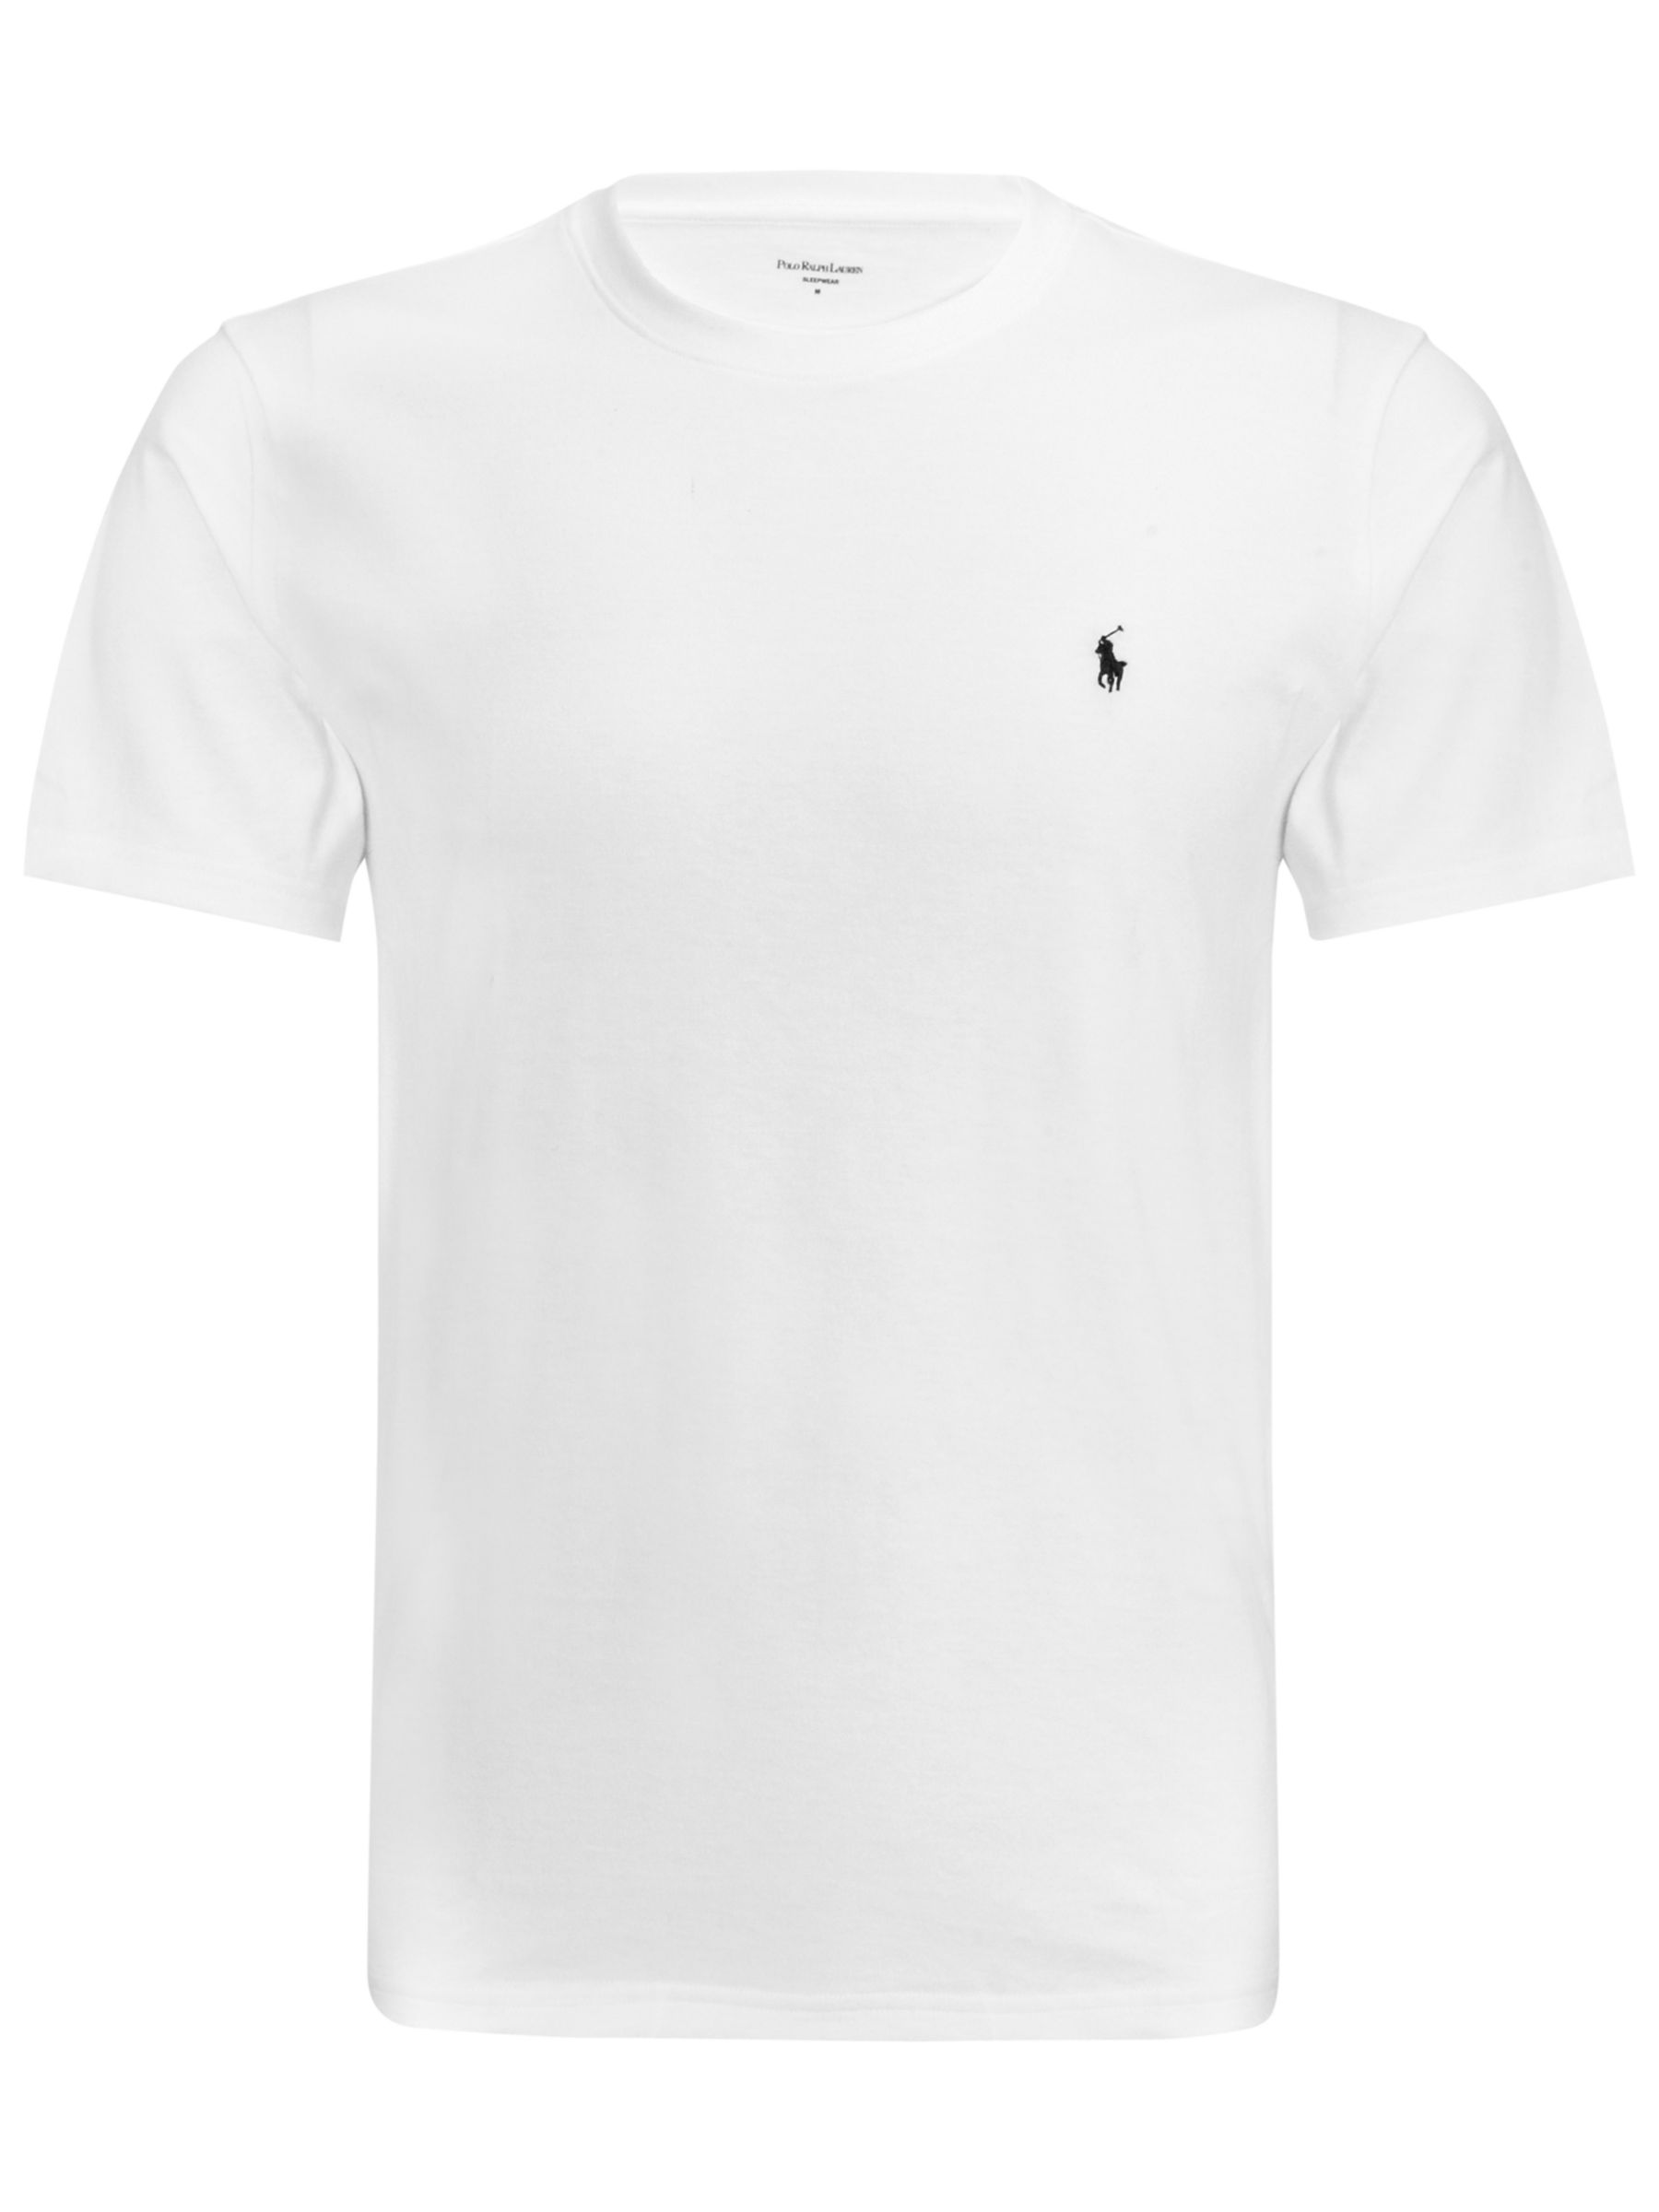 Polo Ralph Lauren Crew Neck Lounge T-Shirt, White